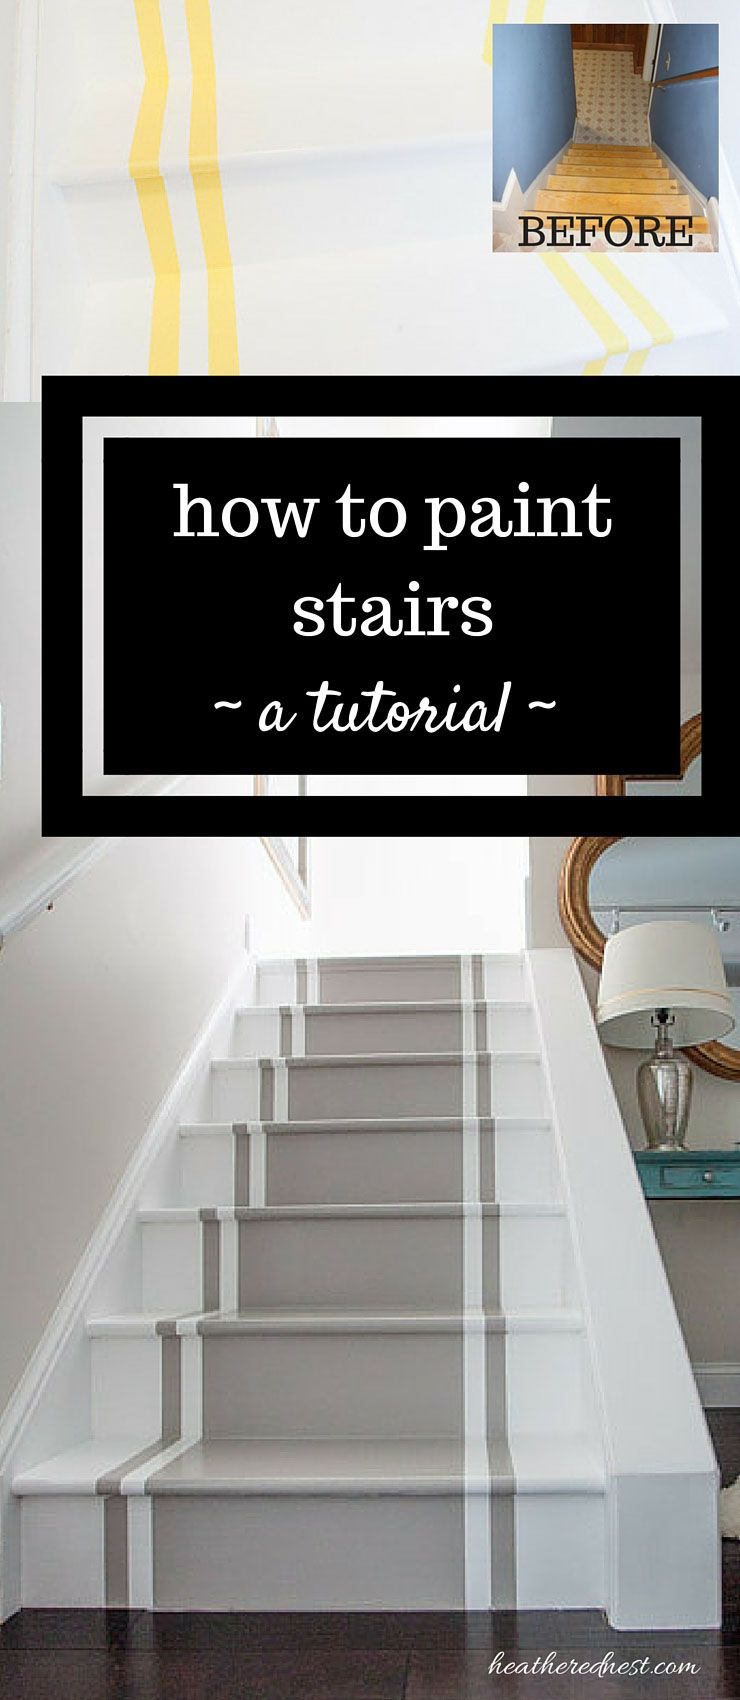 How to paint stairs a diy tutorial pinterest stair for Diy staircase makeover